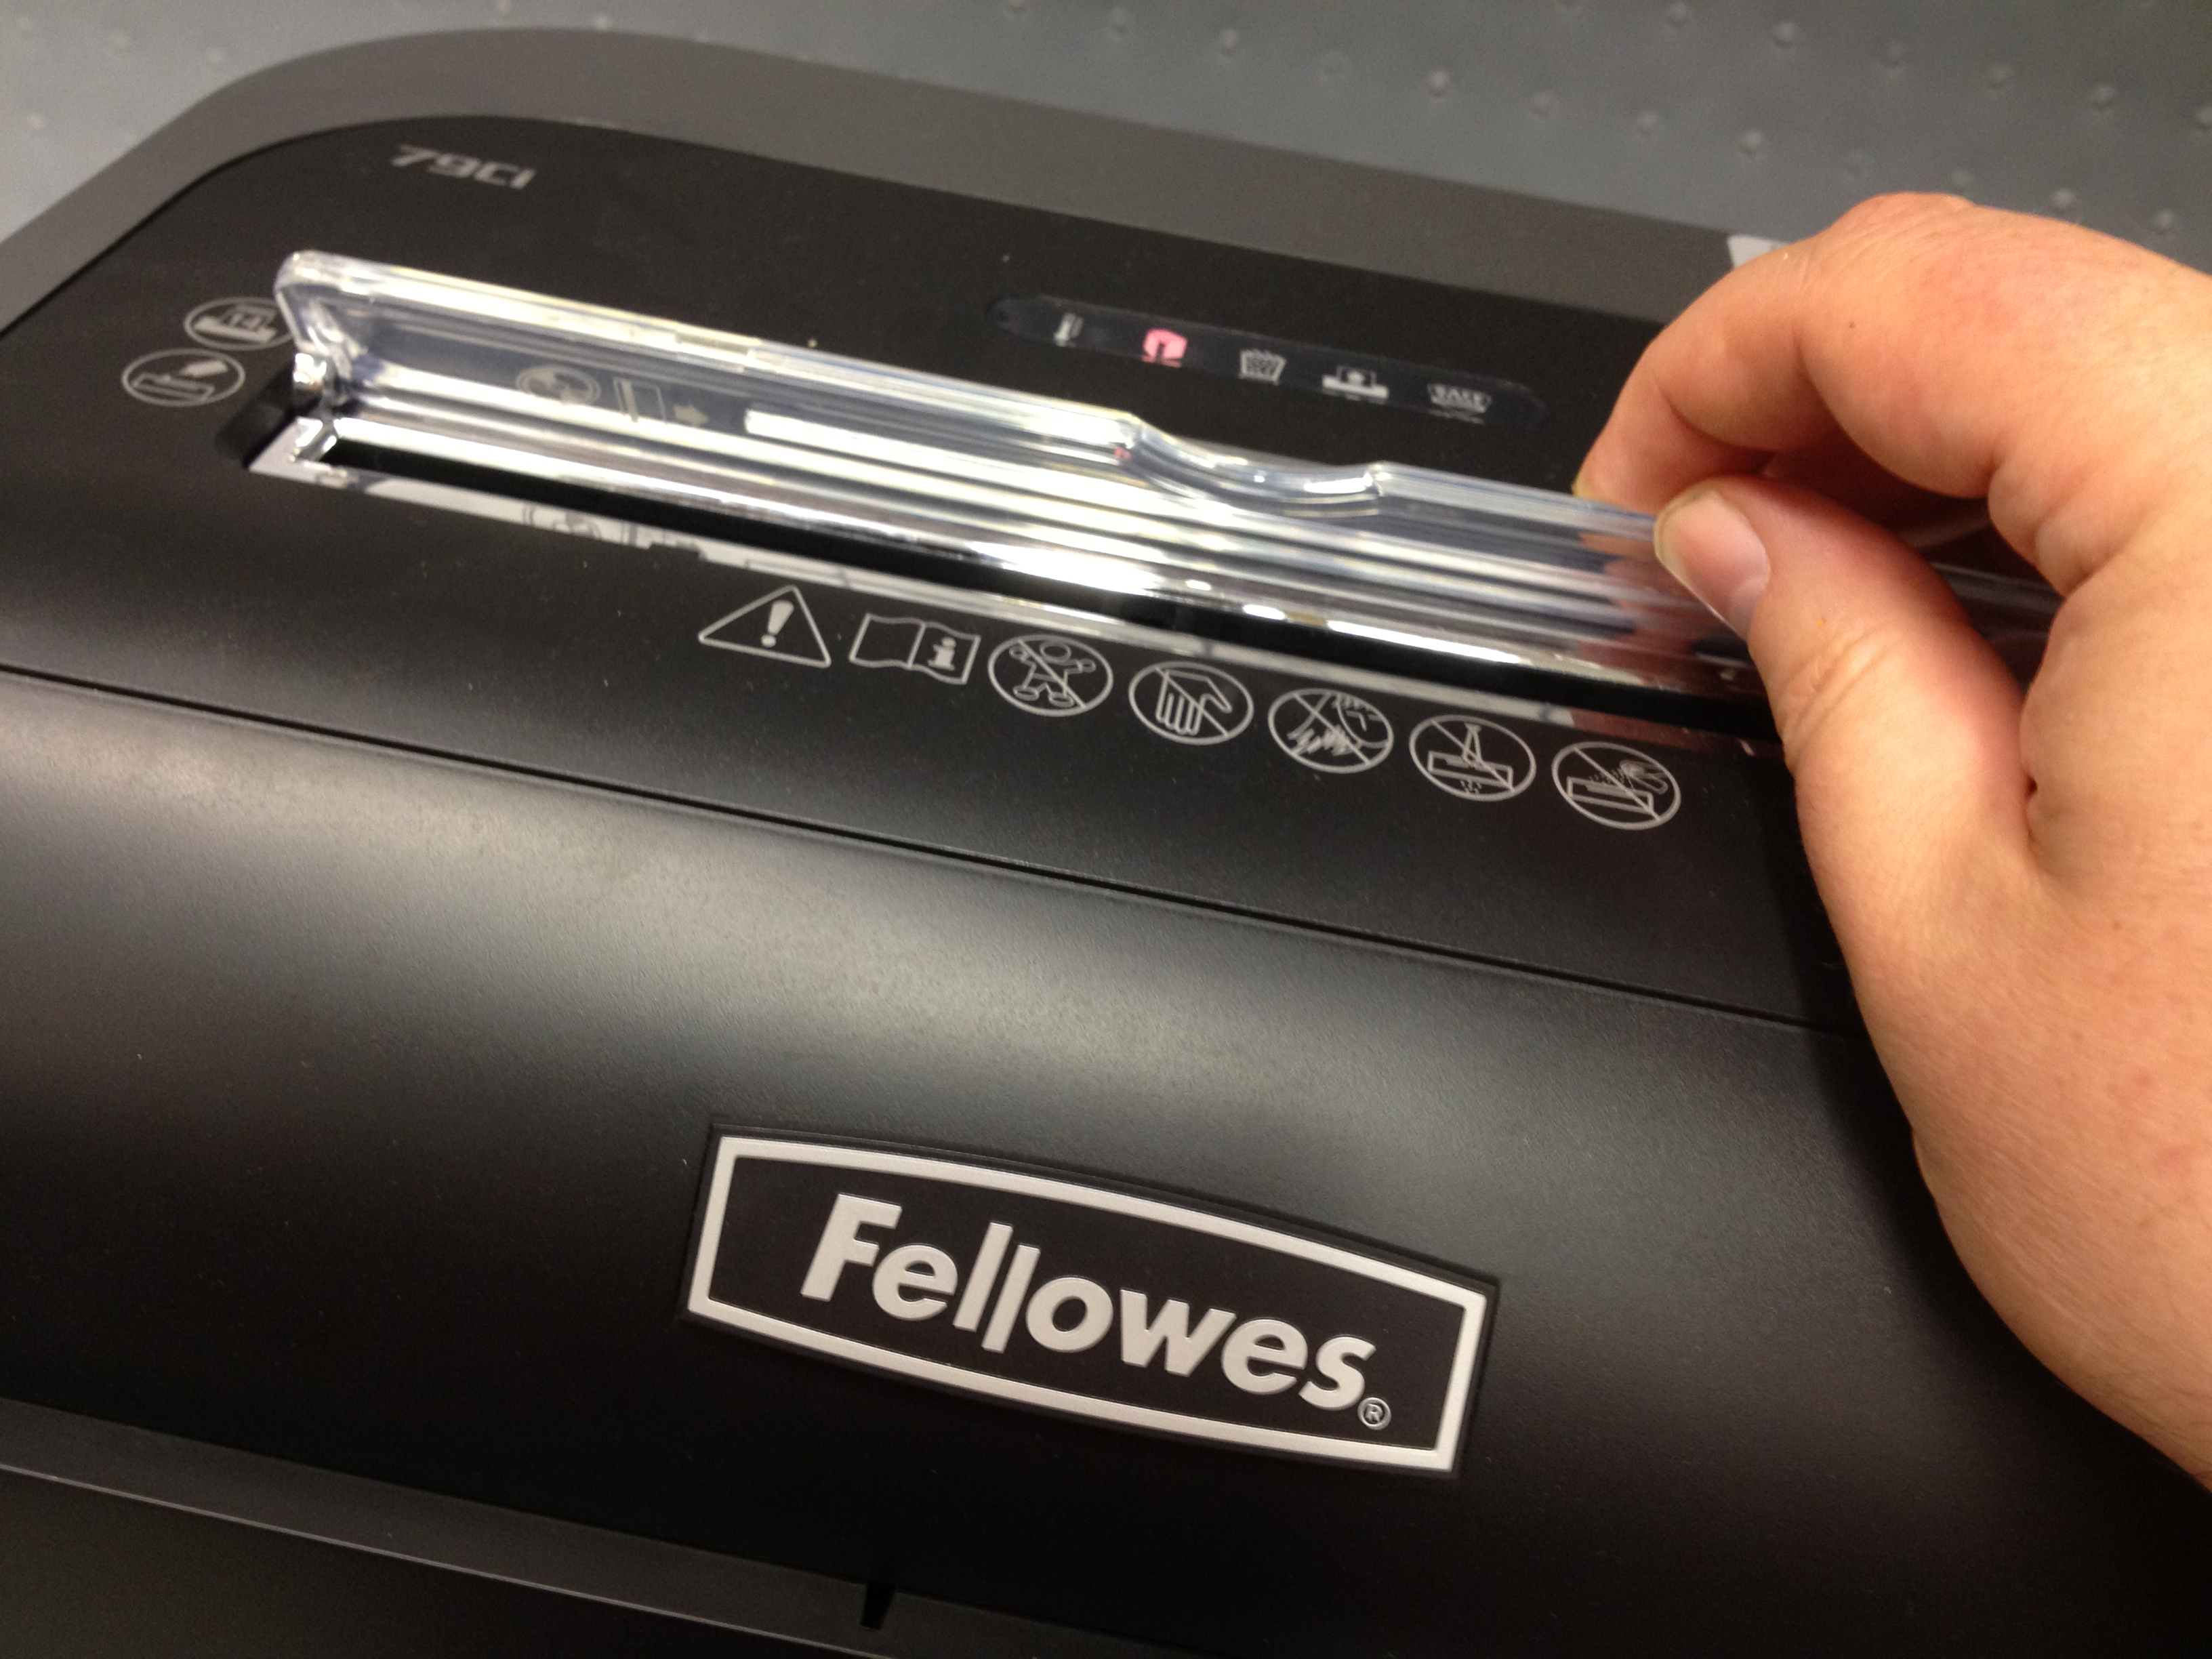 fellowes 79ci 100 jam proof shredder review fellowesinc